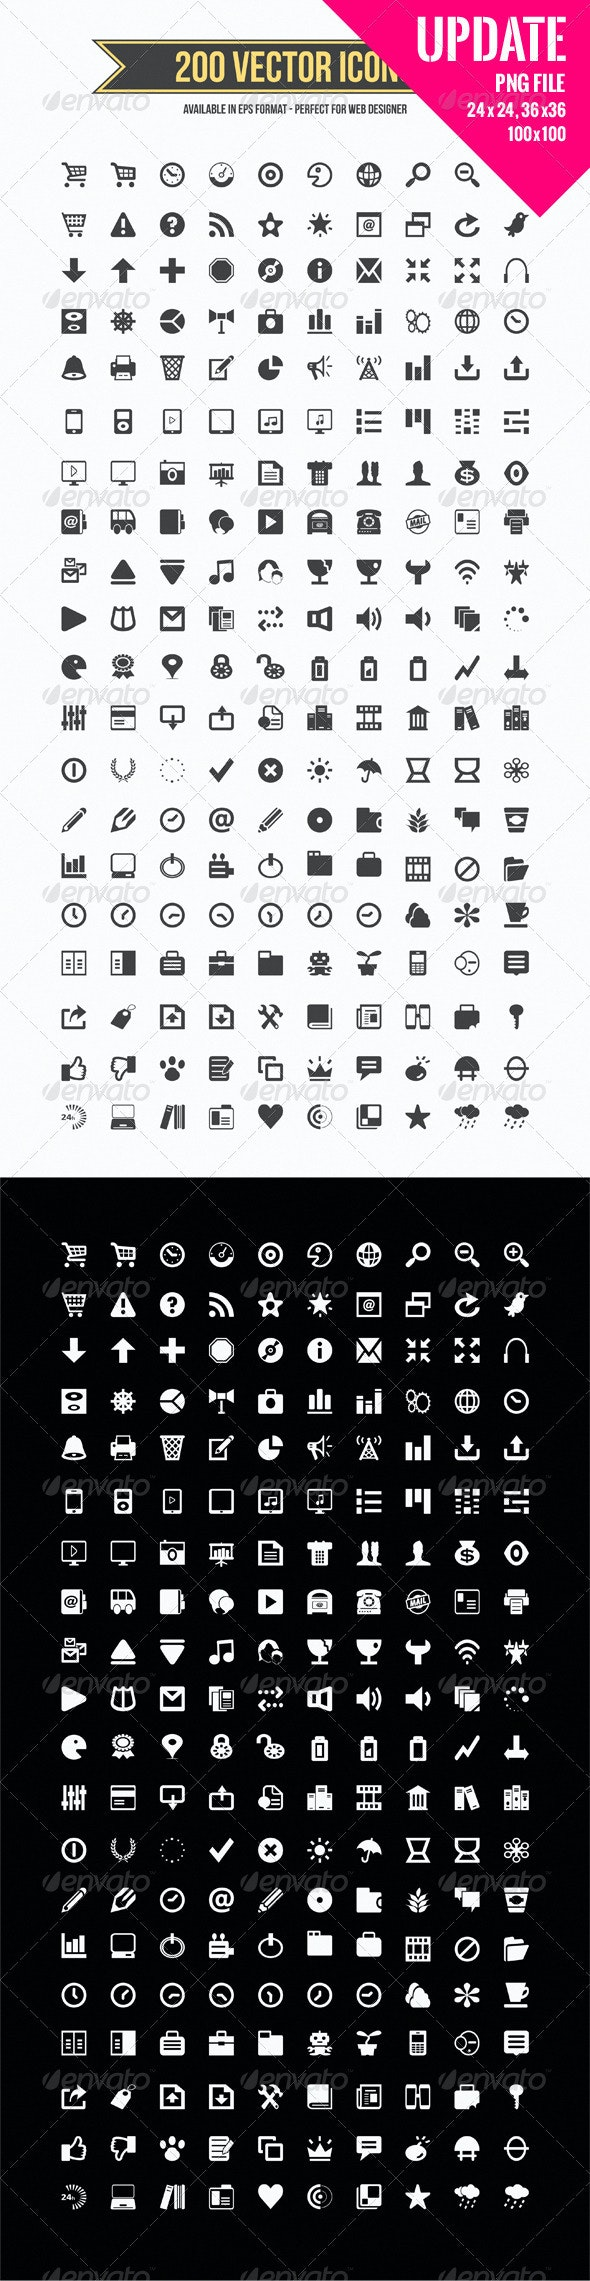 200 Vector Icons - Web Icons